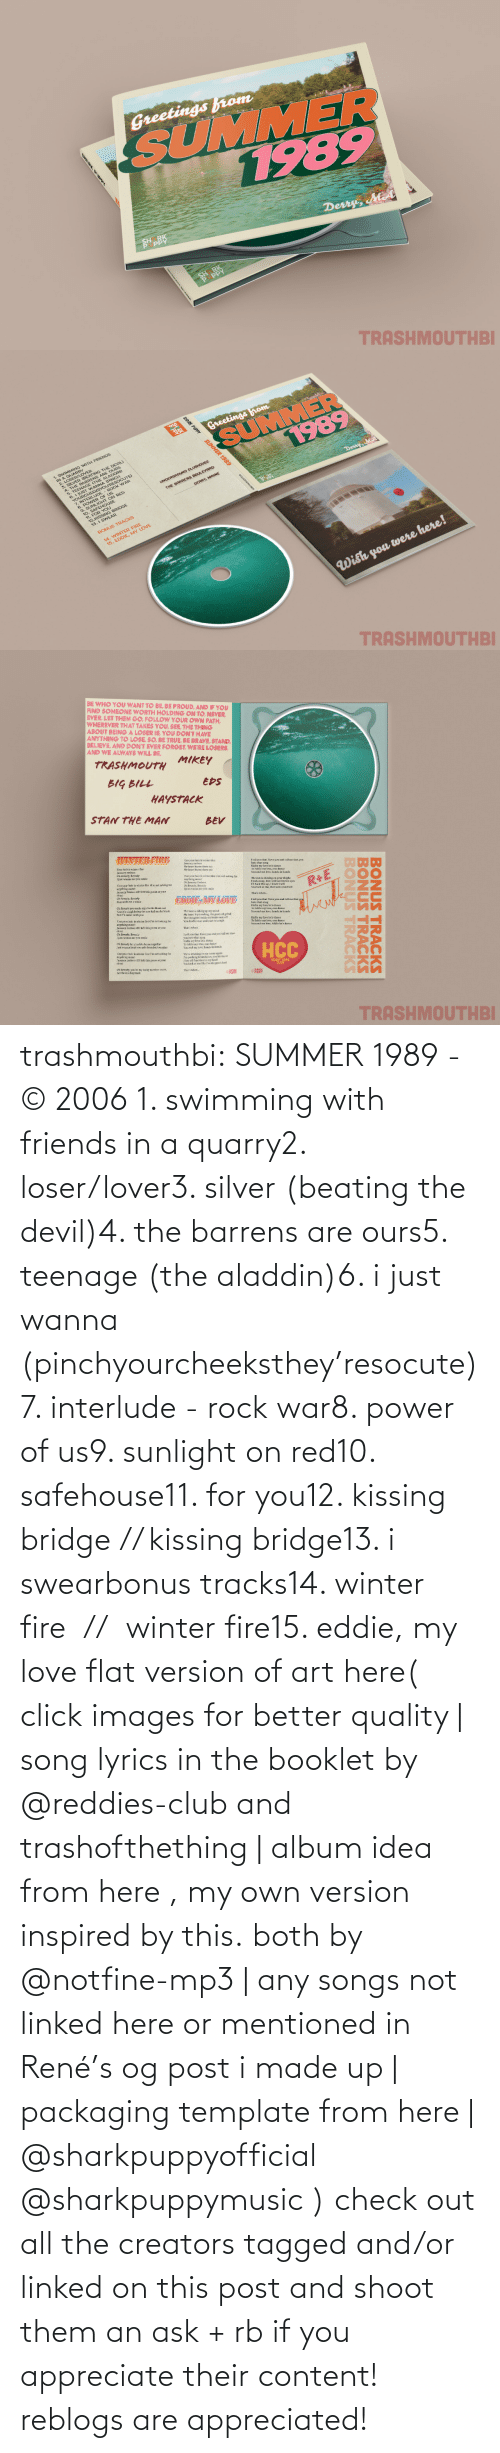 album: trashmouthbi: SUMMER 1989 - © 2006 1. swimming with friends in a quarry2. loser/lover3. silver (beating the devil)4. the barrens are ours5. teenage (the aladdin)6. i just wanna (pinchyourcheeksthey'resocute)7. interlude - rock war8. power of us9. sunlight on red10. safehouse11. for you12. kissing bridge // kissing bridge13. i swearbonus tracks14. winter fire  //  winter fire15. eddie, my love flat version of art here( click images for better quality | song lyrics in the booklet by @reddies-club​ and trashofthething | album idea from here , my own version inspired by this. both by @notfine-mp3​ | any songs not linked here or mentioned in René's og post i made up | packaging template from here | @sharkpuppyofficial​ @sharkpuppymusic​ ) check out all the creators tagged and/or linked on this post and shoot them an ask + rb if you appreciate their content! reblogs are appreciated!